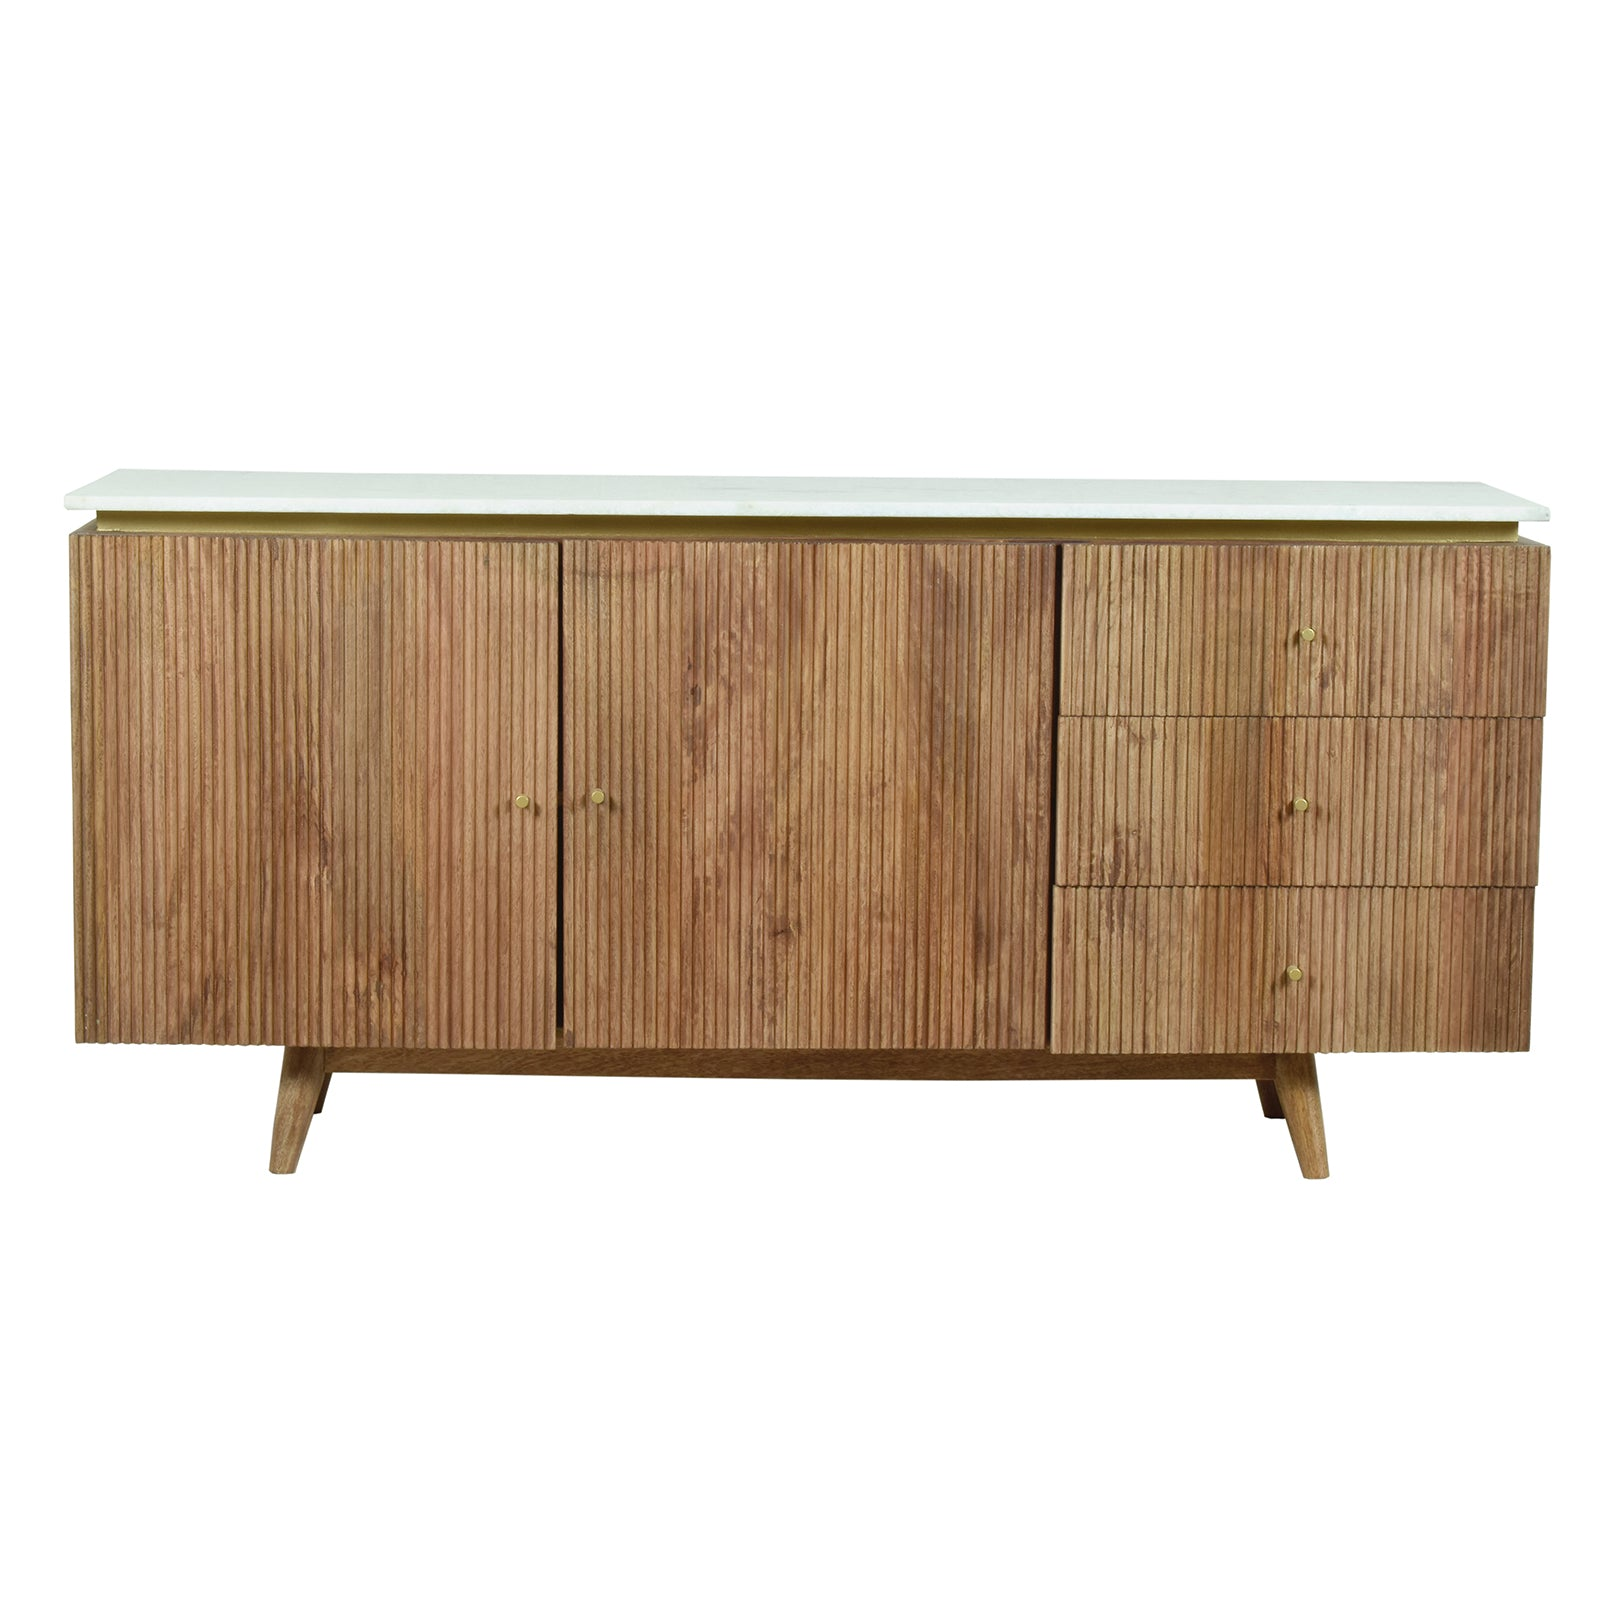 The Cinnamon Sideboard - decorstore